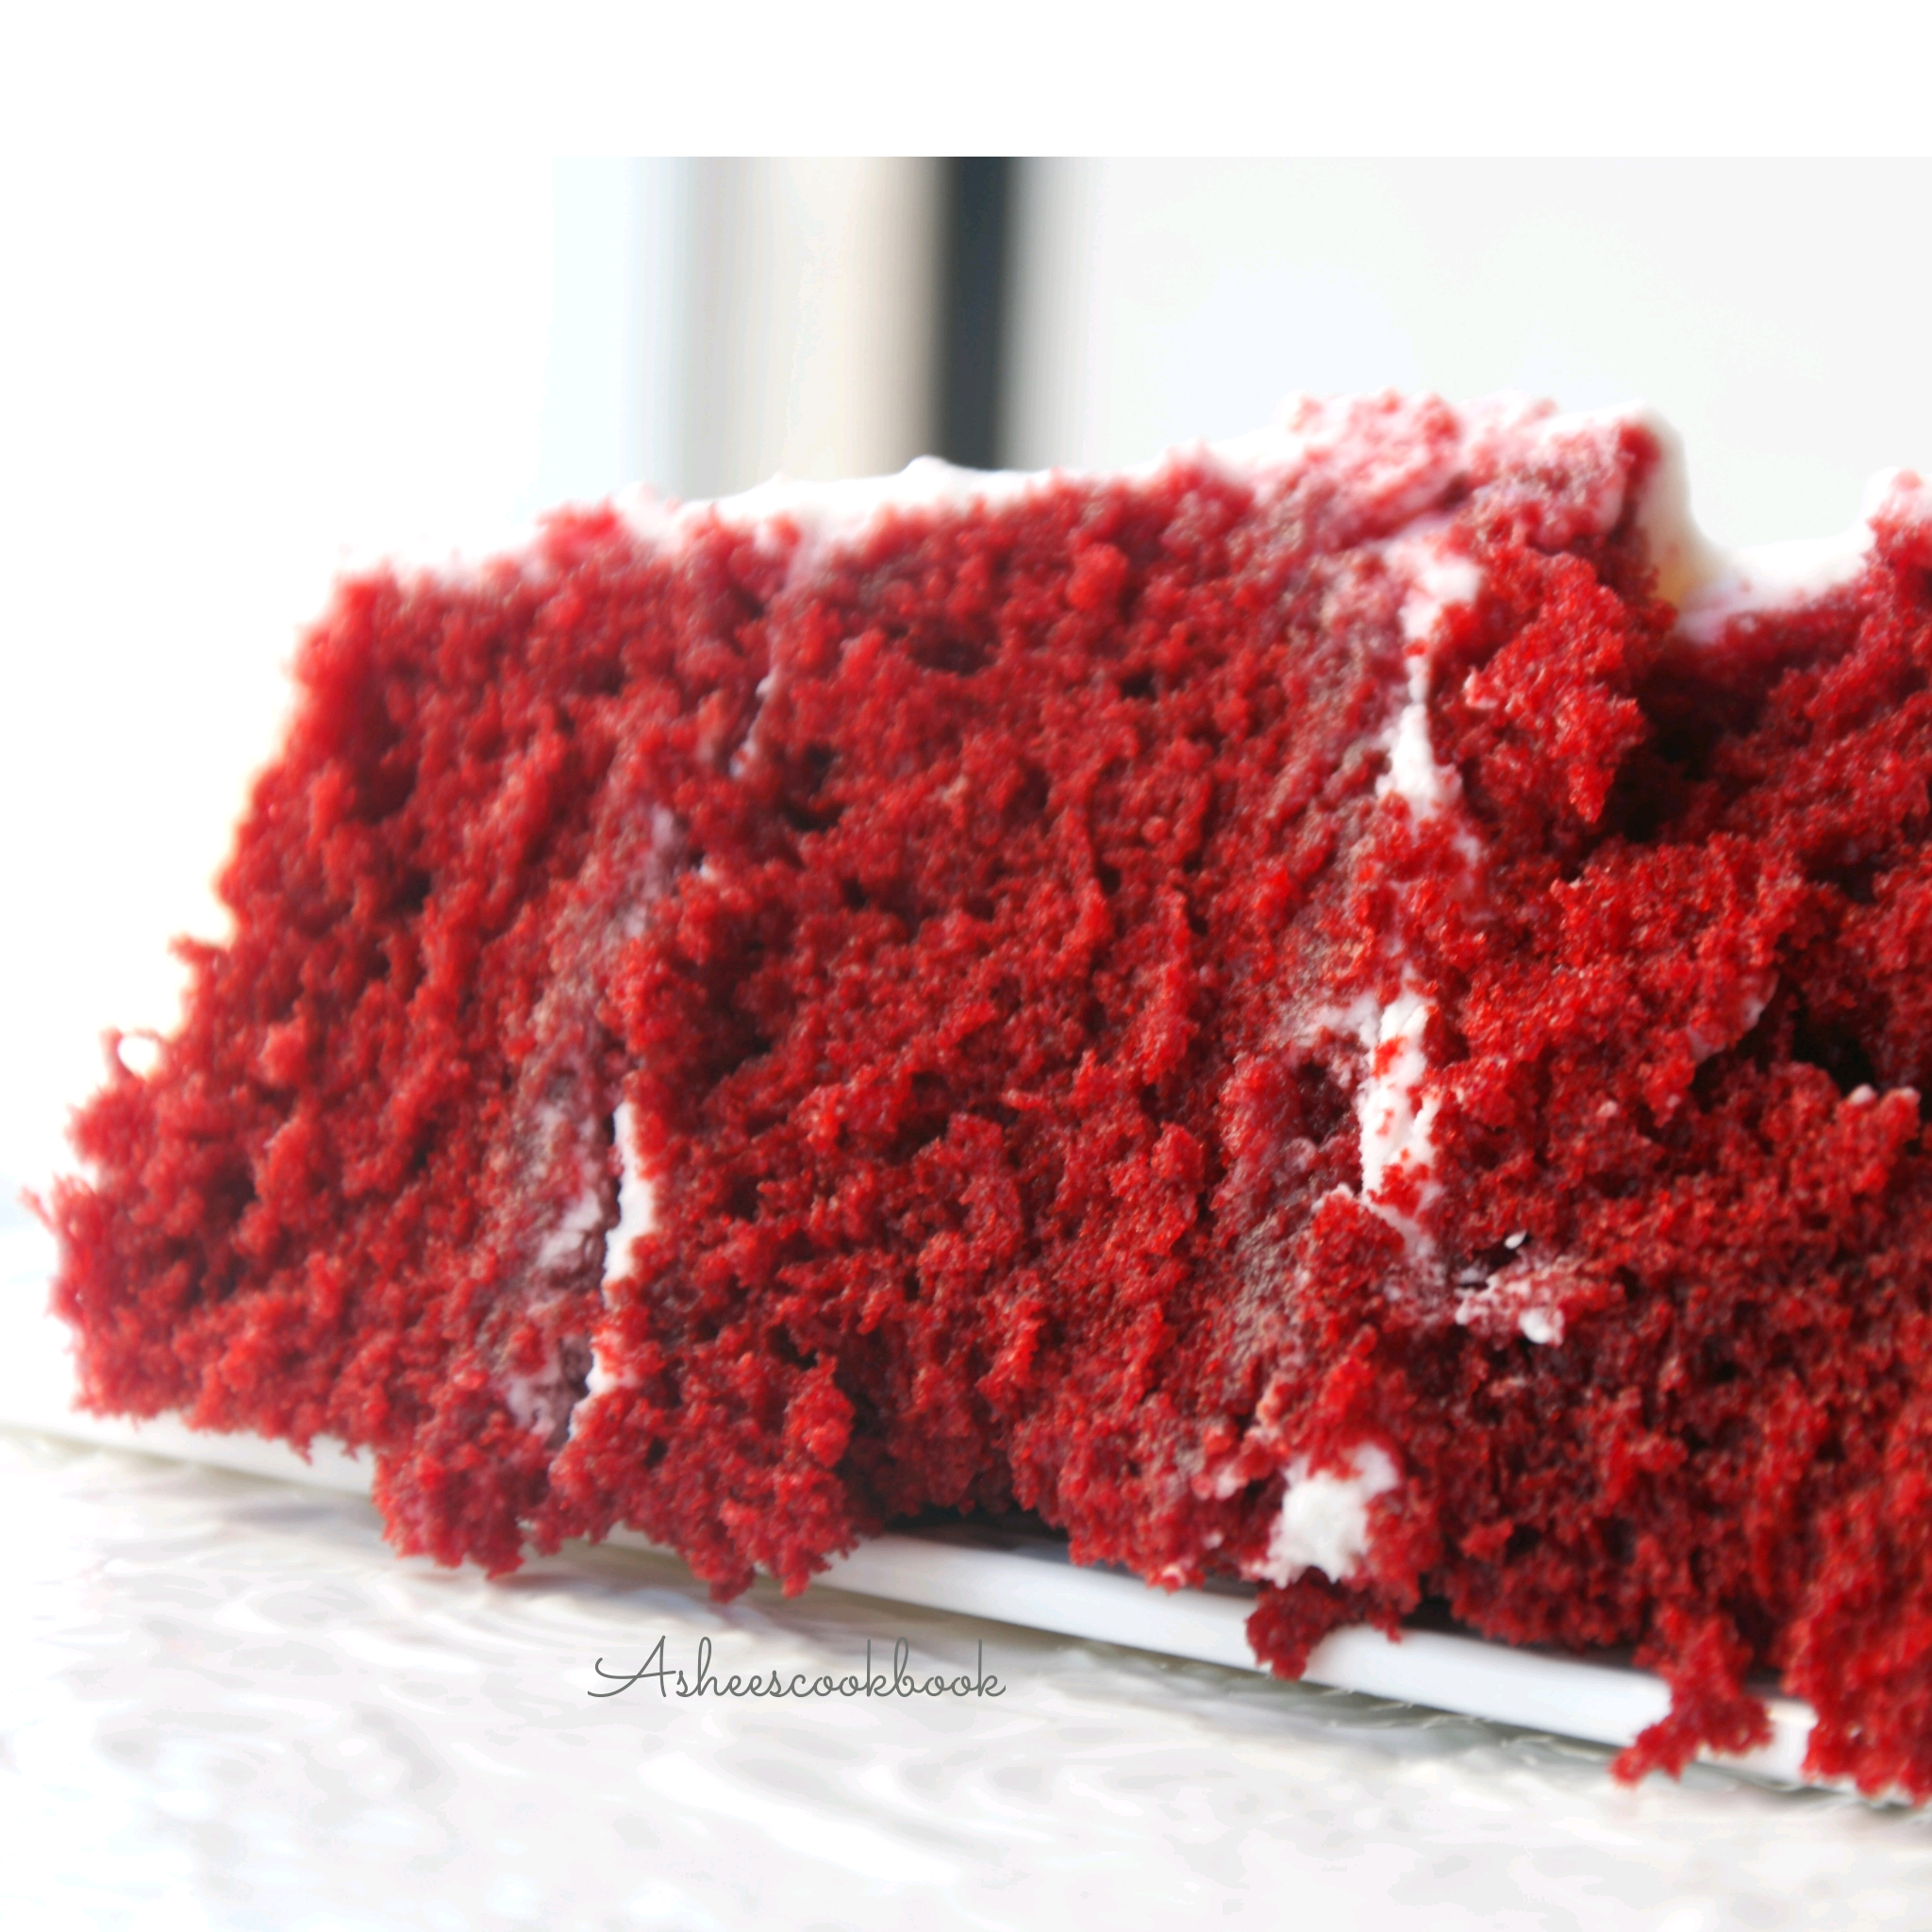 Red Velvet Cake Made In Microwave